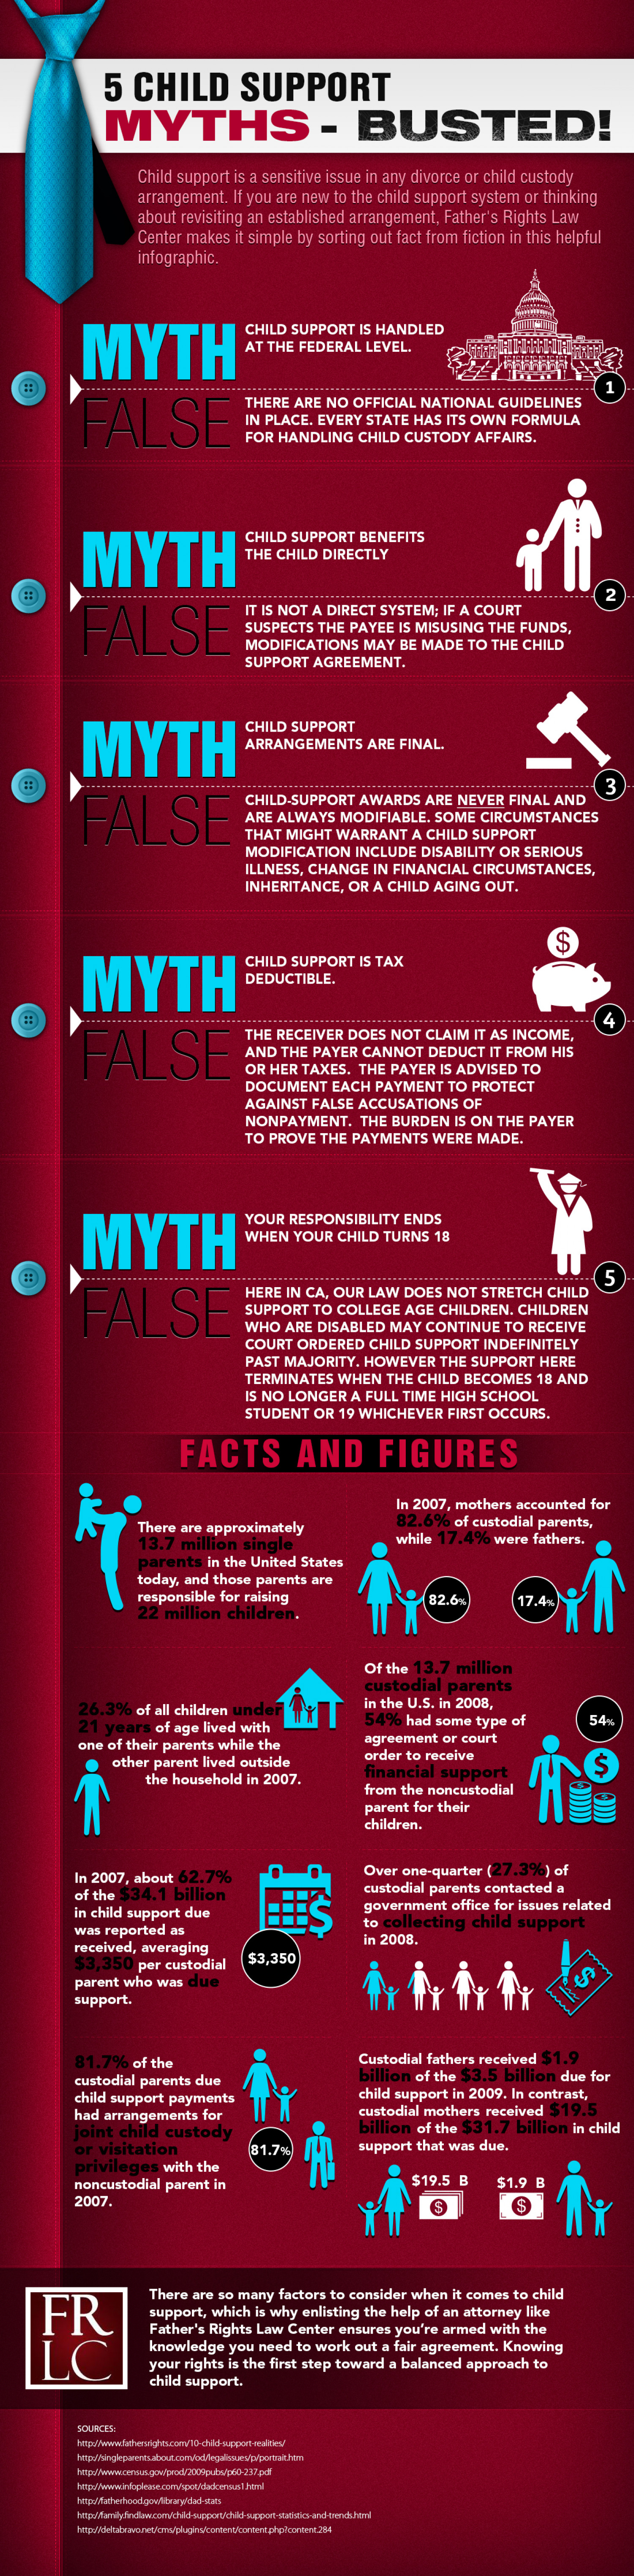 5 Child Support Myths - Busted! Infographic